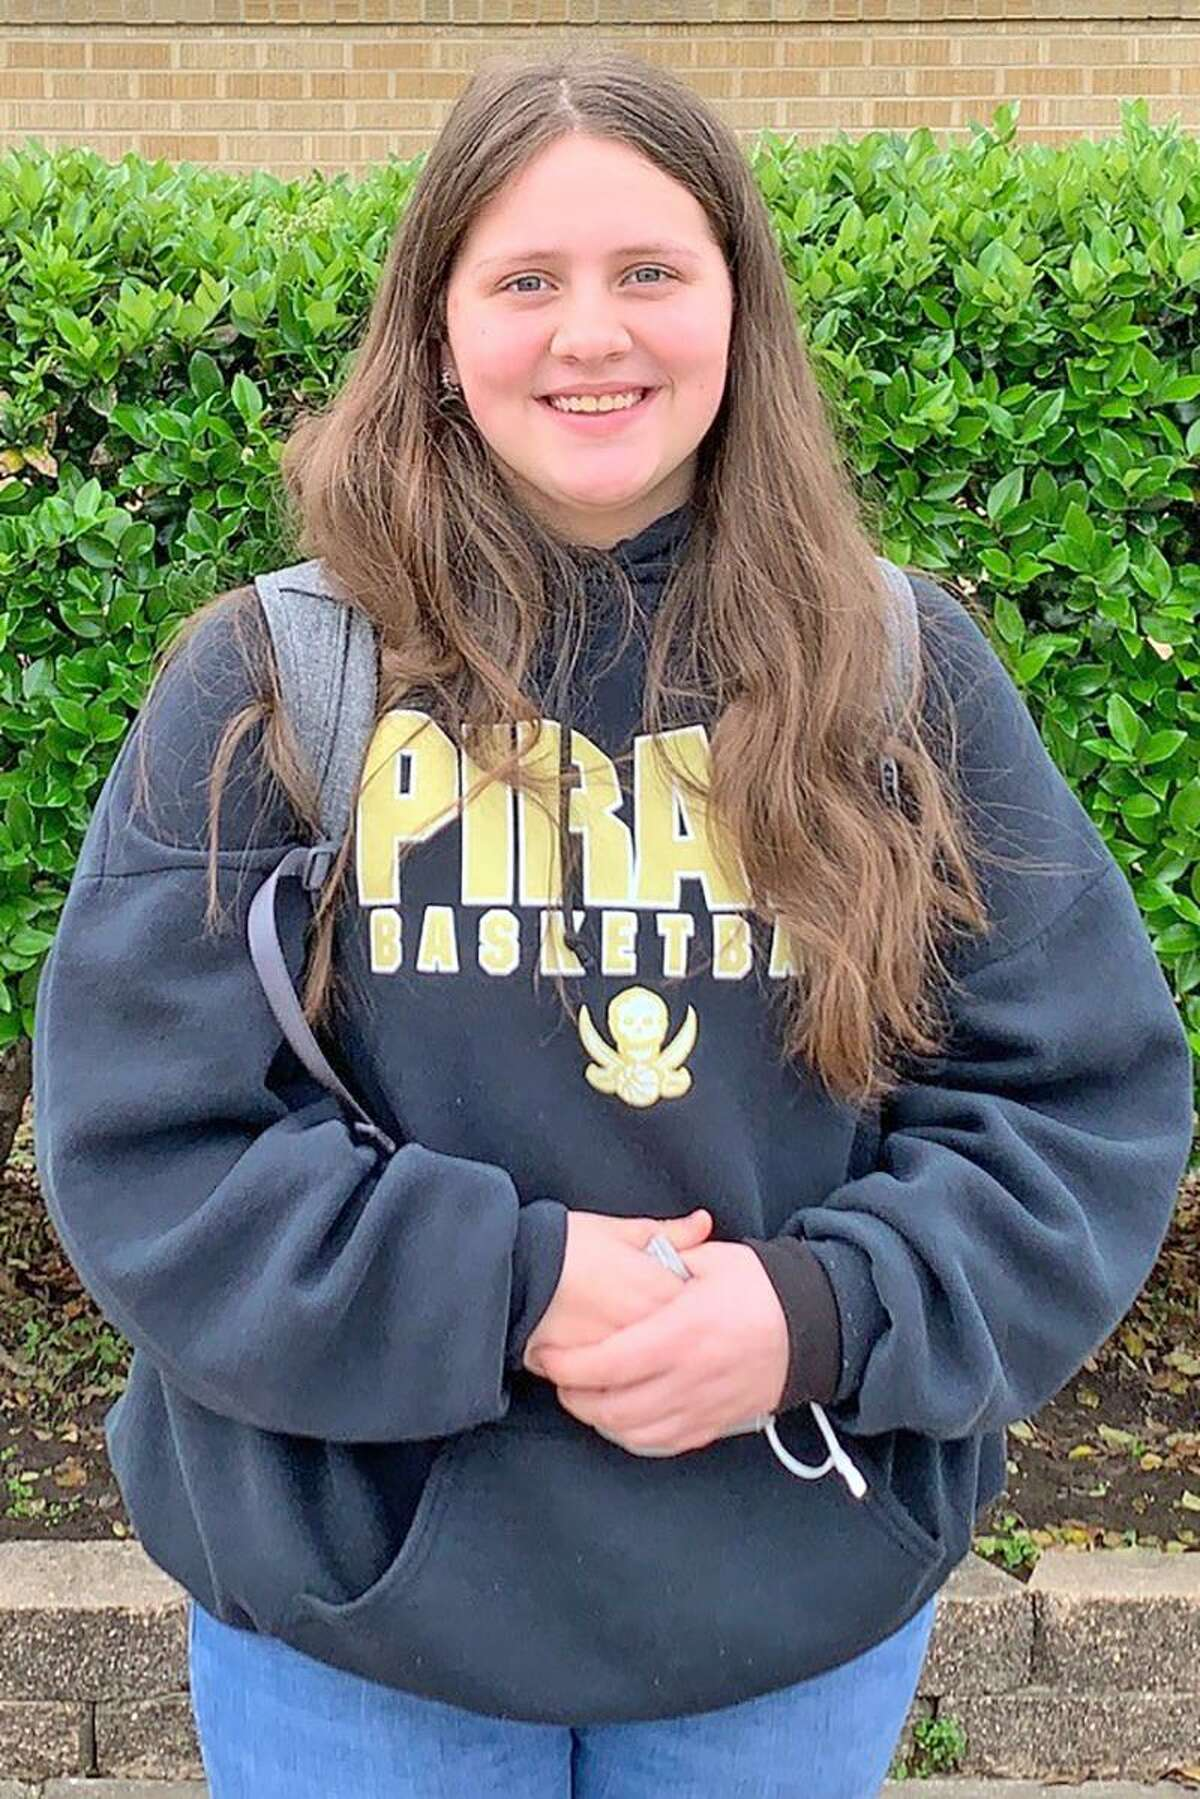 Kaileigh Courts, a student at Vidor High School, will advance to state-level competition after winning the Southeast Texas Regional Citizen Bee, recently hosted by Lamar State College Port Arthur.